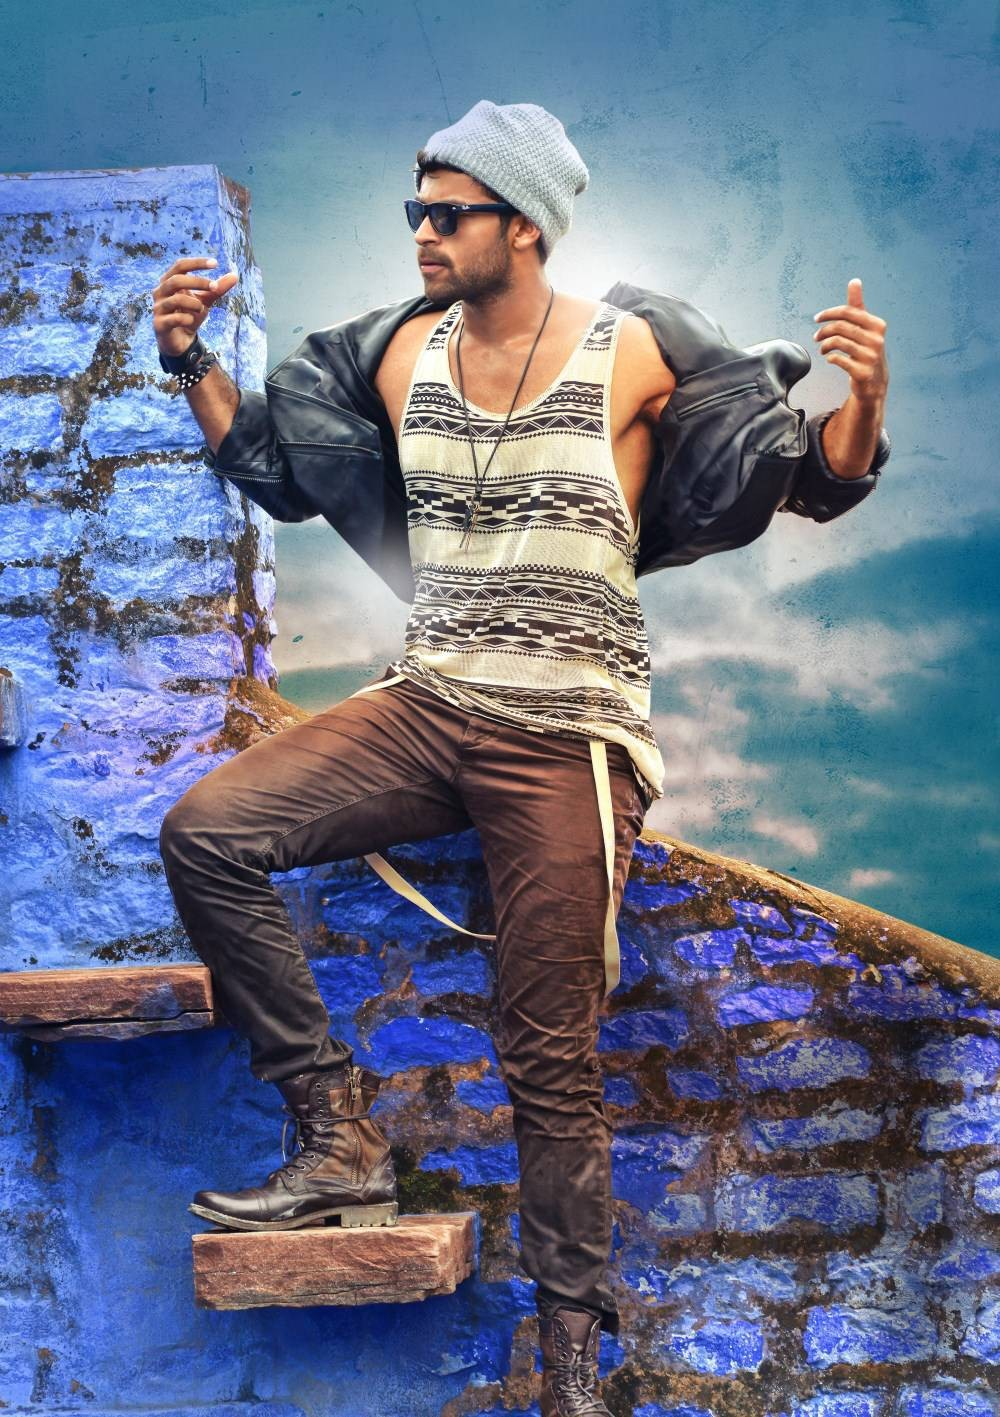 Loafer,telugu movie Loafer,Prince Varun Tej,Disha Patani,Prince Varun Tej and Disha Patani,Loafer movie stills,Loafer movie images,Loafer movie pics,Loafer movie pictures